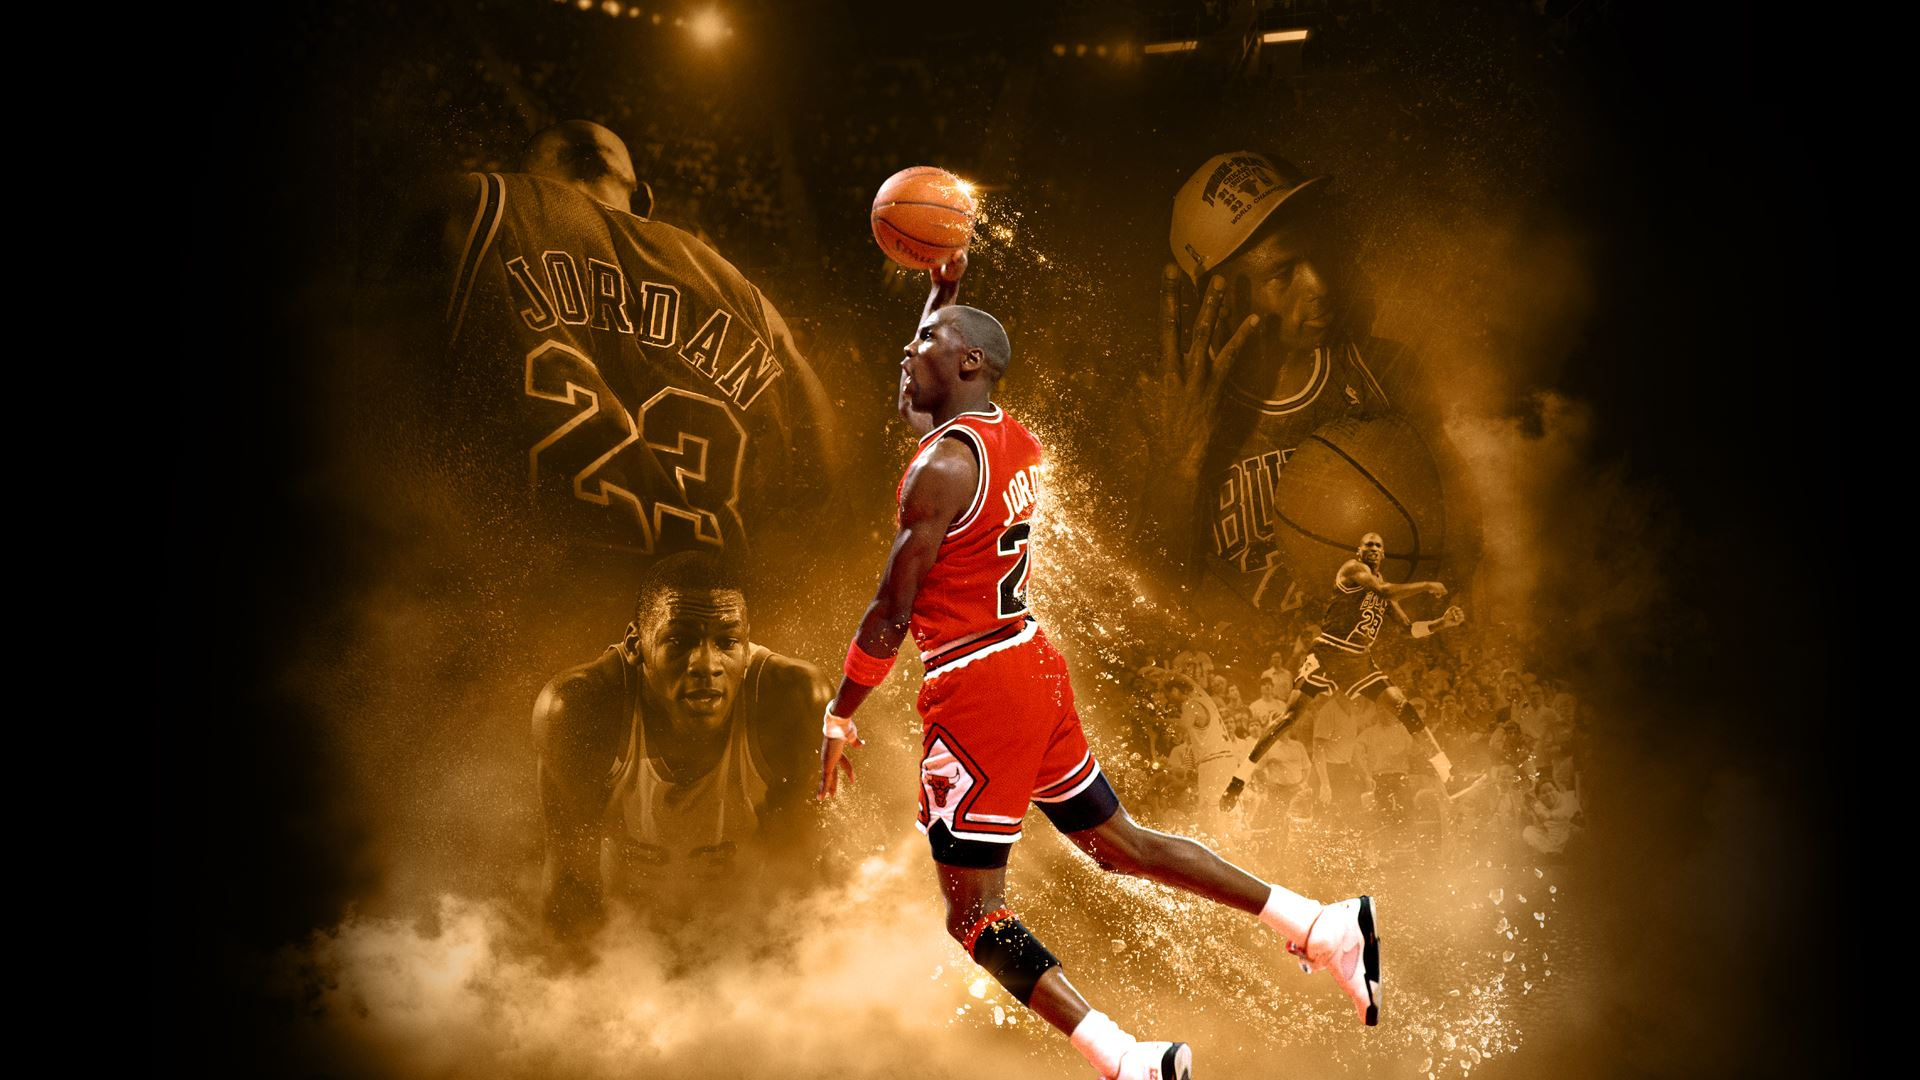 nba 2k wallpaper the hippest galleries